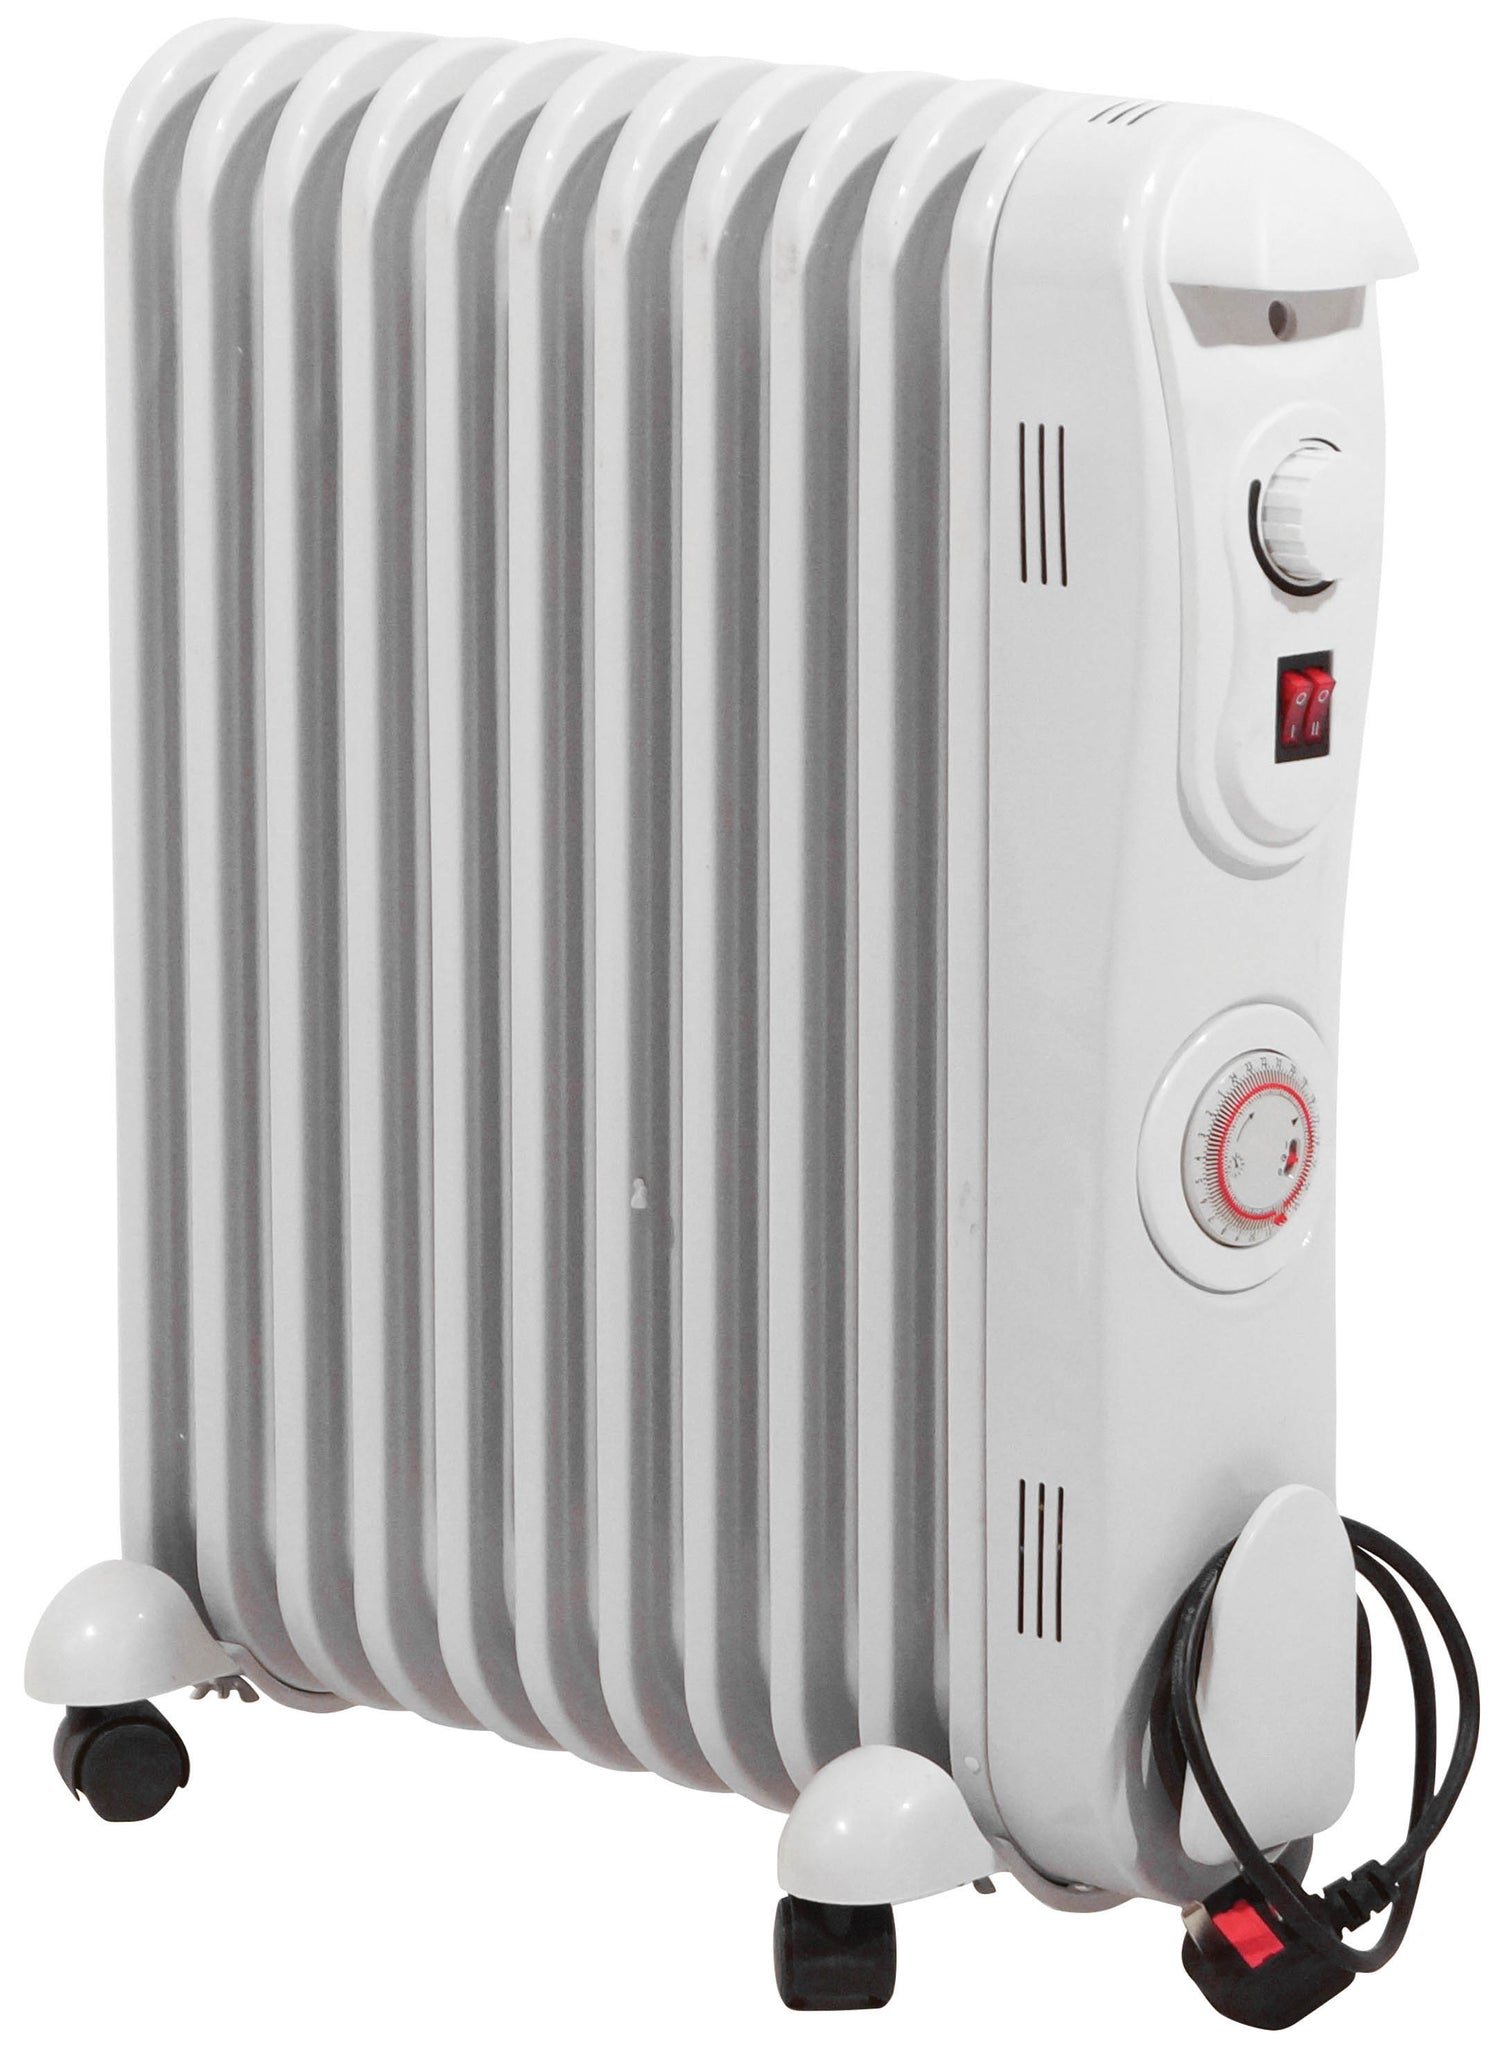 Prem-I-Air Fin Oil Filled Radiator 2.5 kW 11 with 24 Hour Timer | EH1846